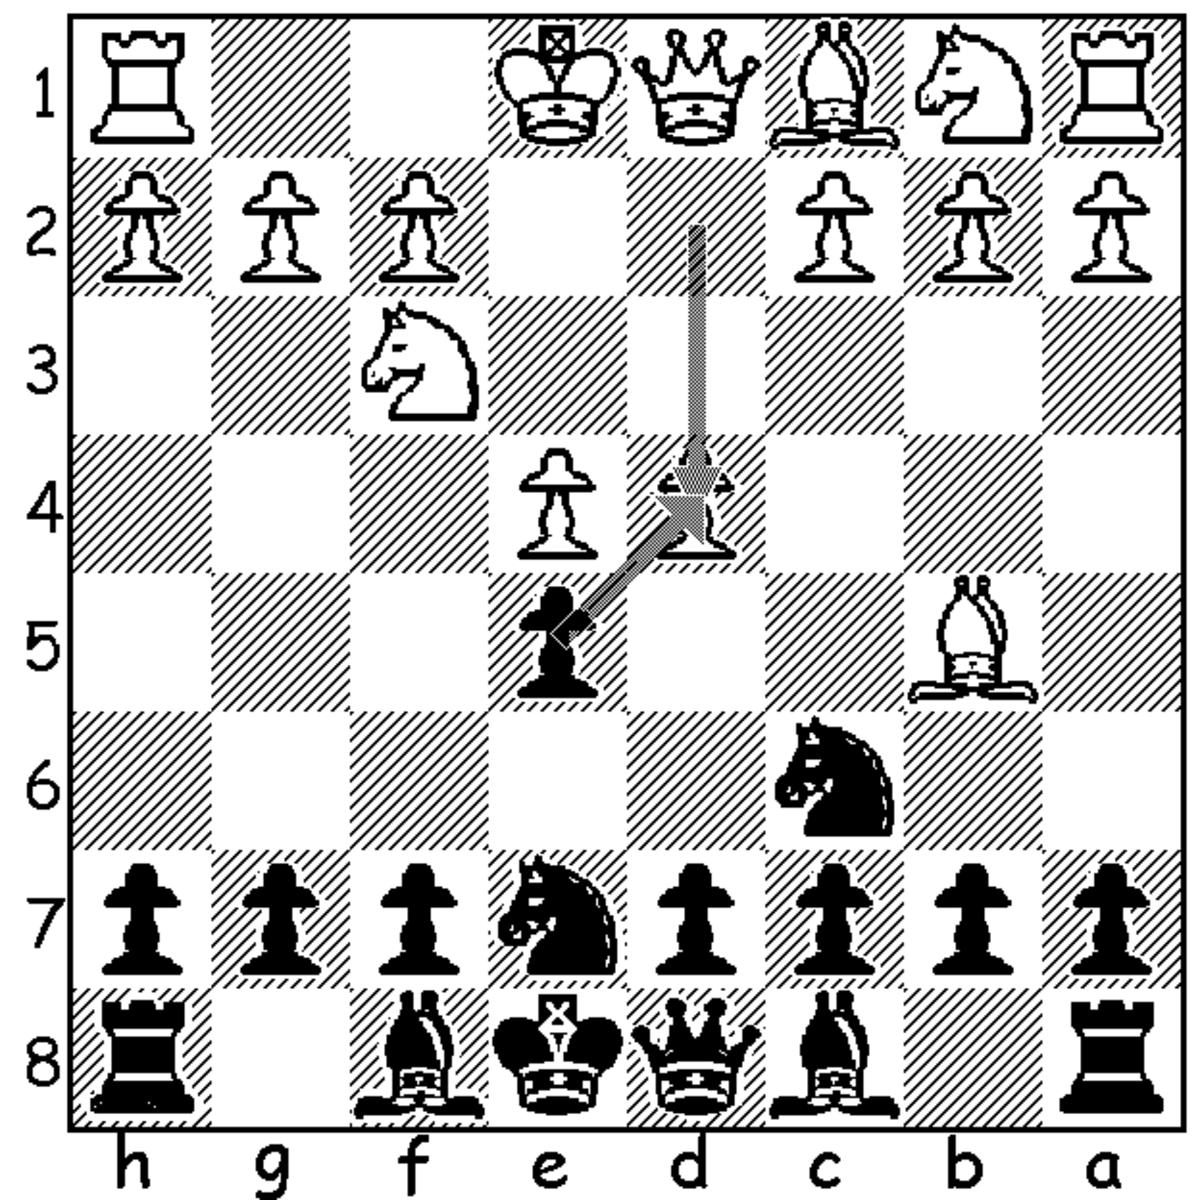 This image shows the position following 4.d4. It also shows black's main response, 4...exd4. Keep in mind that black also has the option to play 4...Nxd4, but this tends to score relatively poorly compared to 4...exd4.